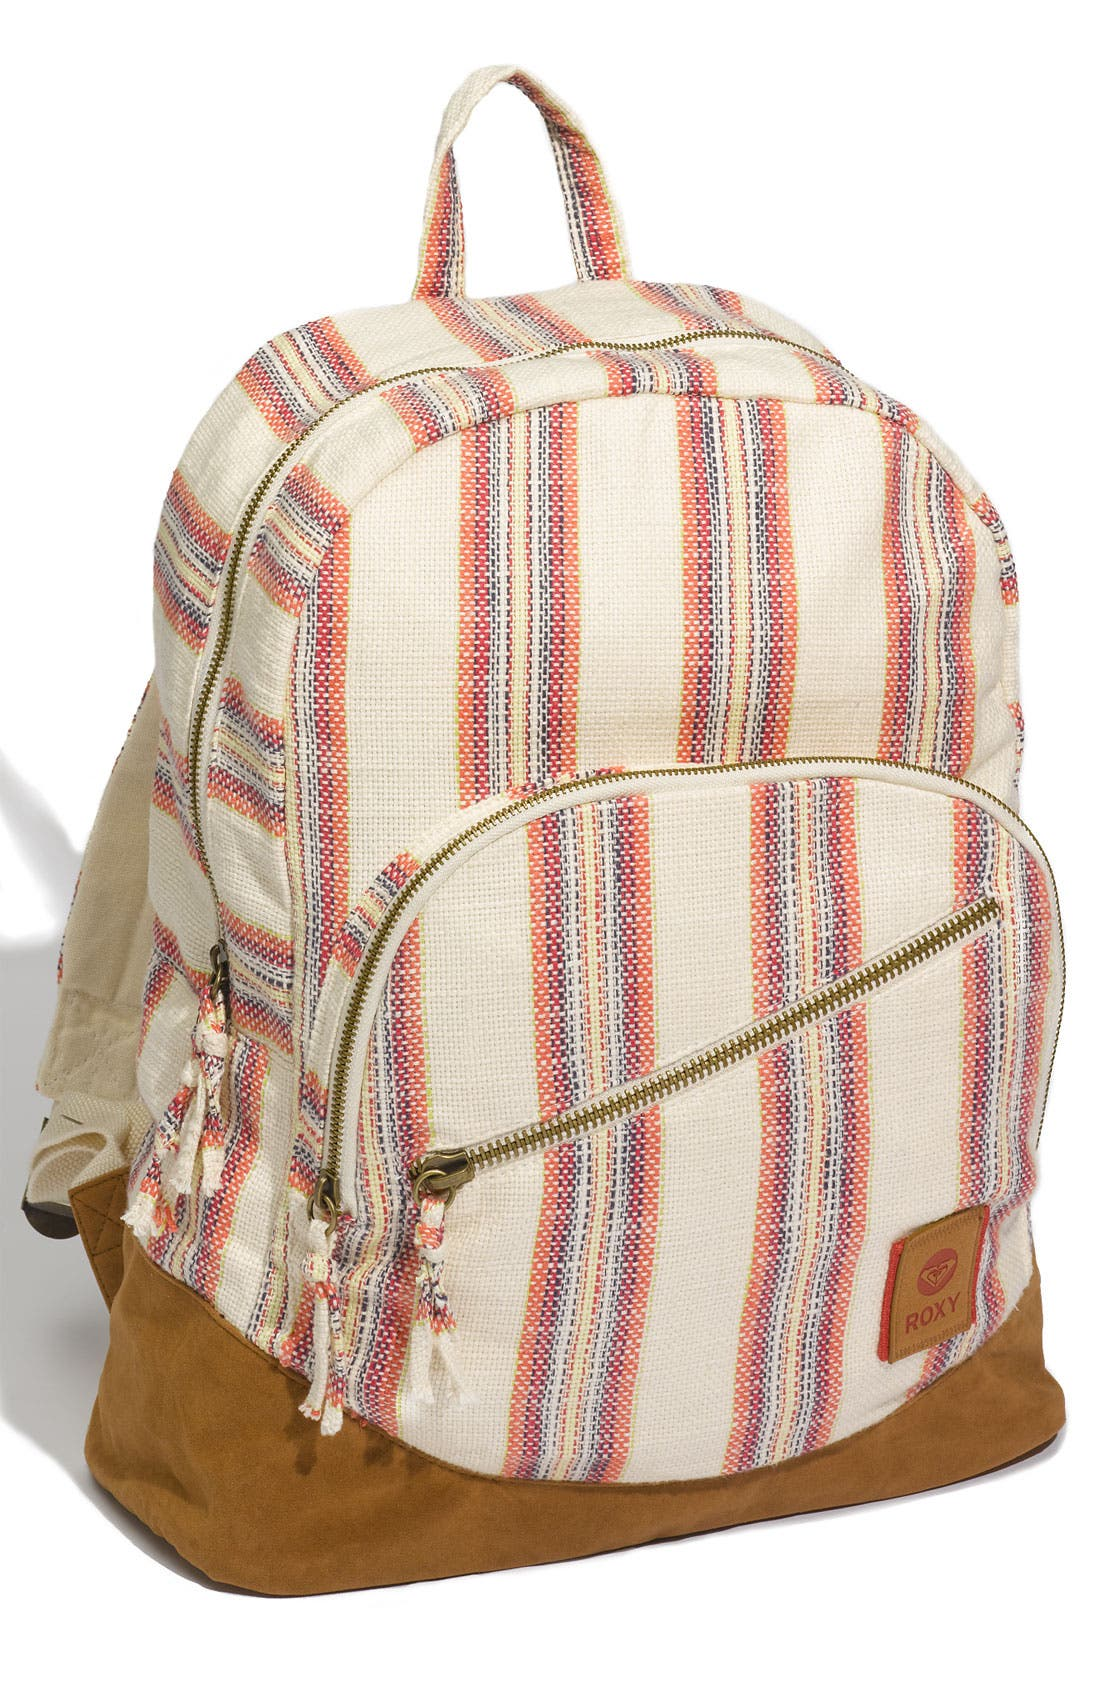 Main Image - 'So Long' Canvas Backpack